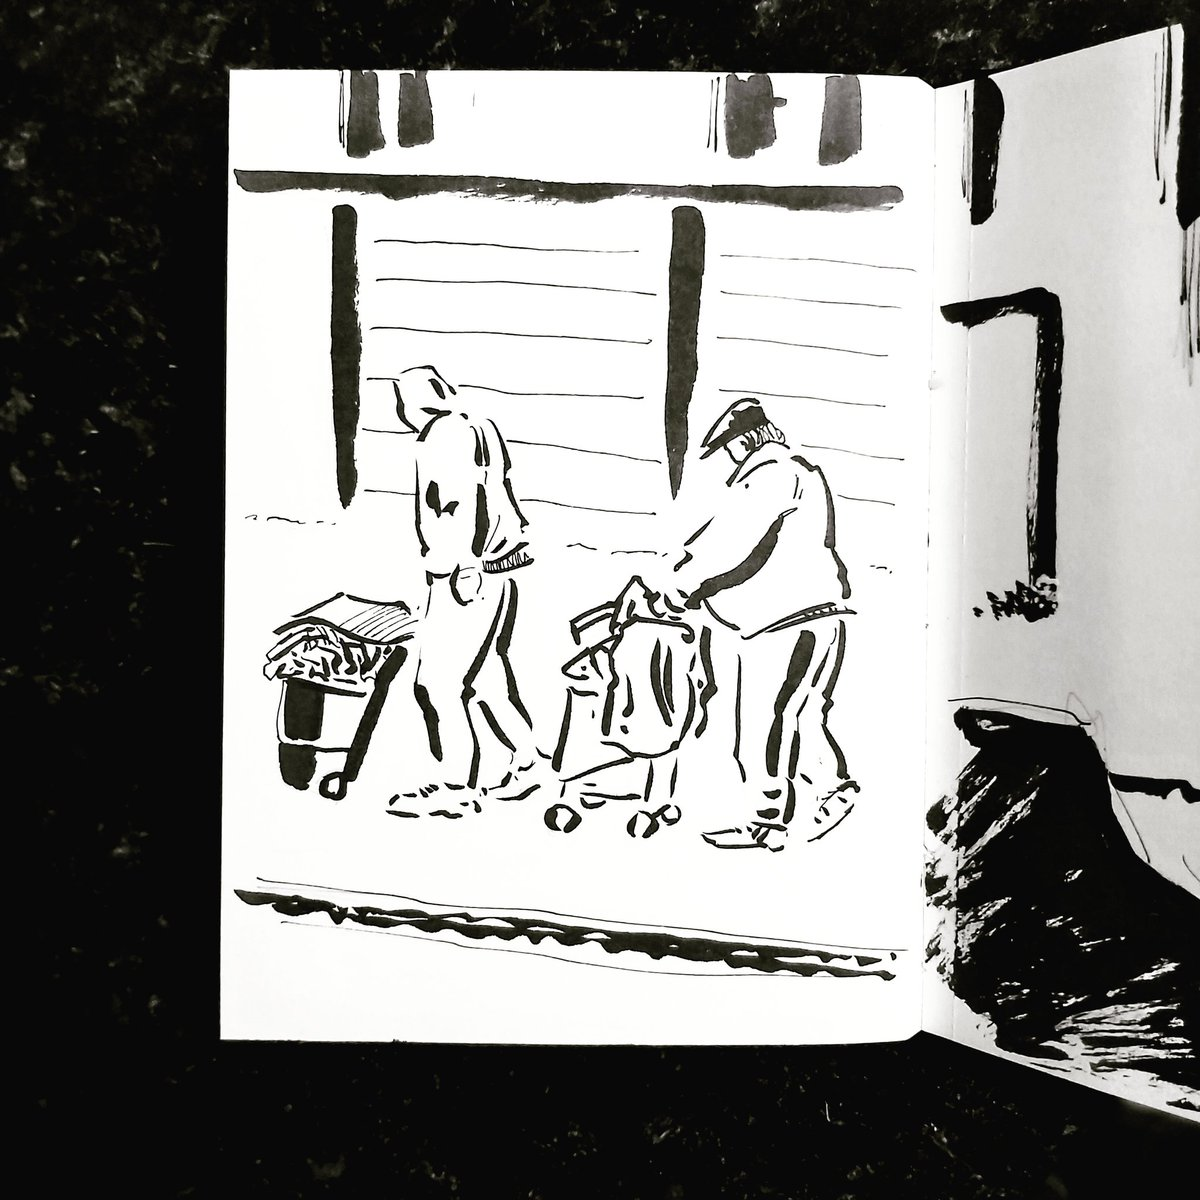 From the Inside 2 Day 149 (267 total) #isolation study Kitchen window Passerby No 160/161 #isolationlife #stayathome #lockdown #lockdown2uk #sketchbook #sketch #drawing #draw #doodle #ink #lineart #lifedrawing #figuredrawing #walk #artoftheday #art #artwork #artist #illustration